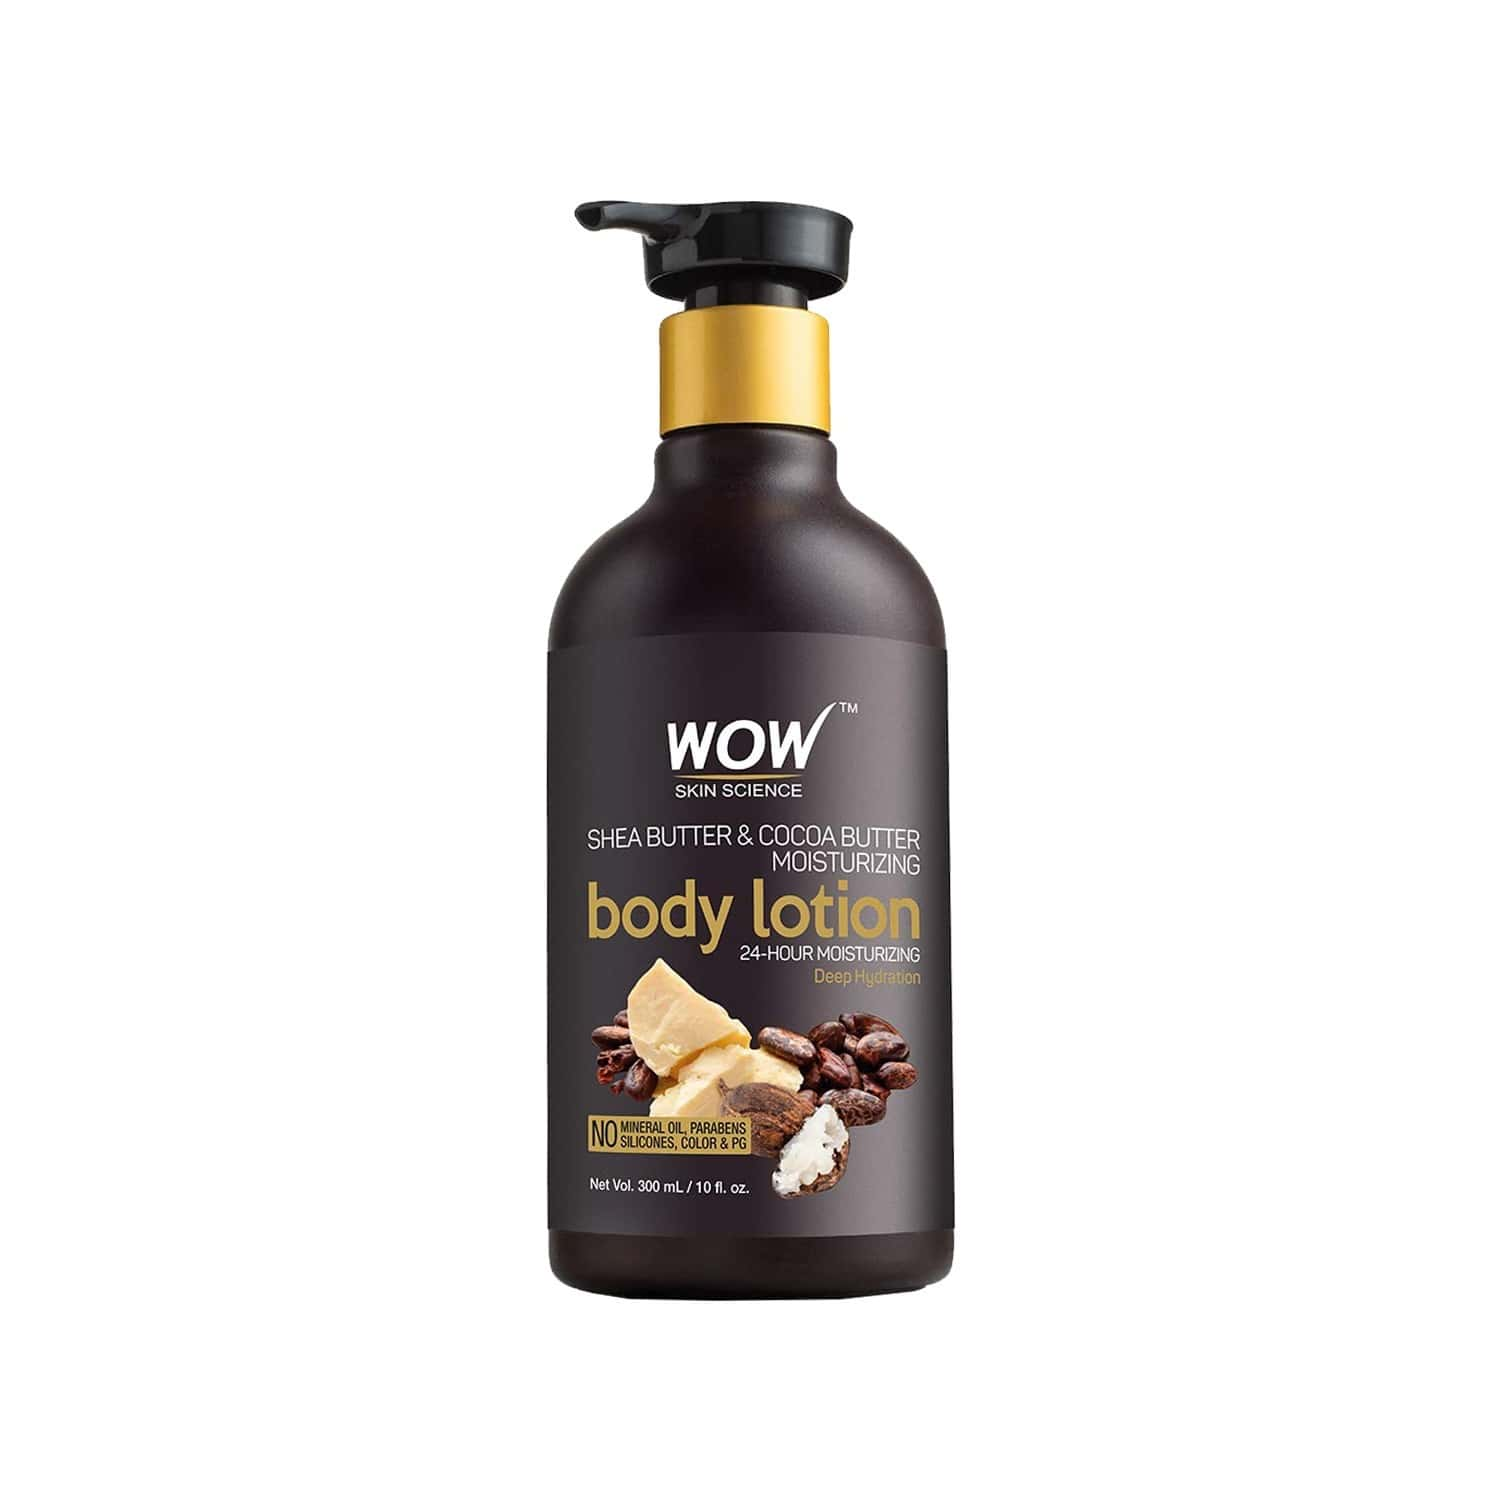 Wow Skin Science Shea & Cocoa Butter Body Lotion - Deep Hydration - 300ml